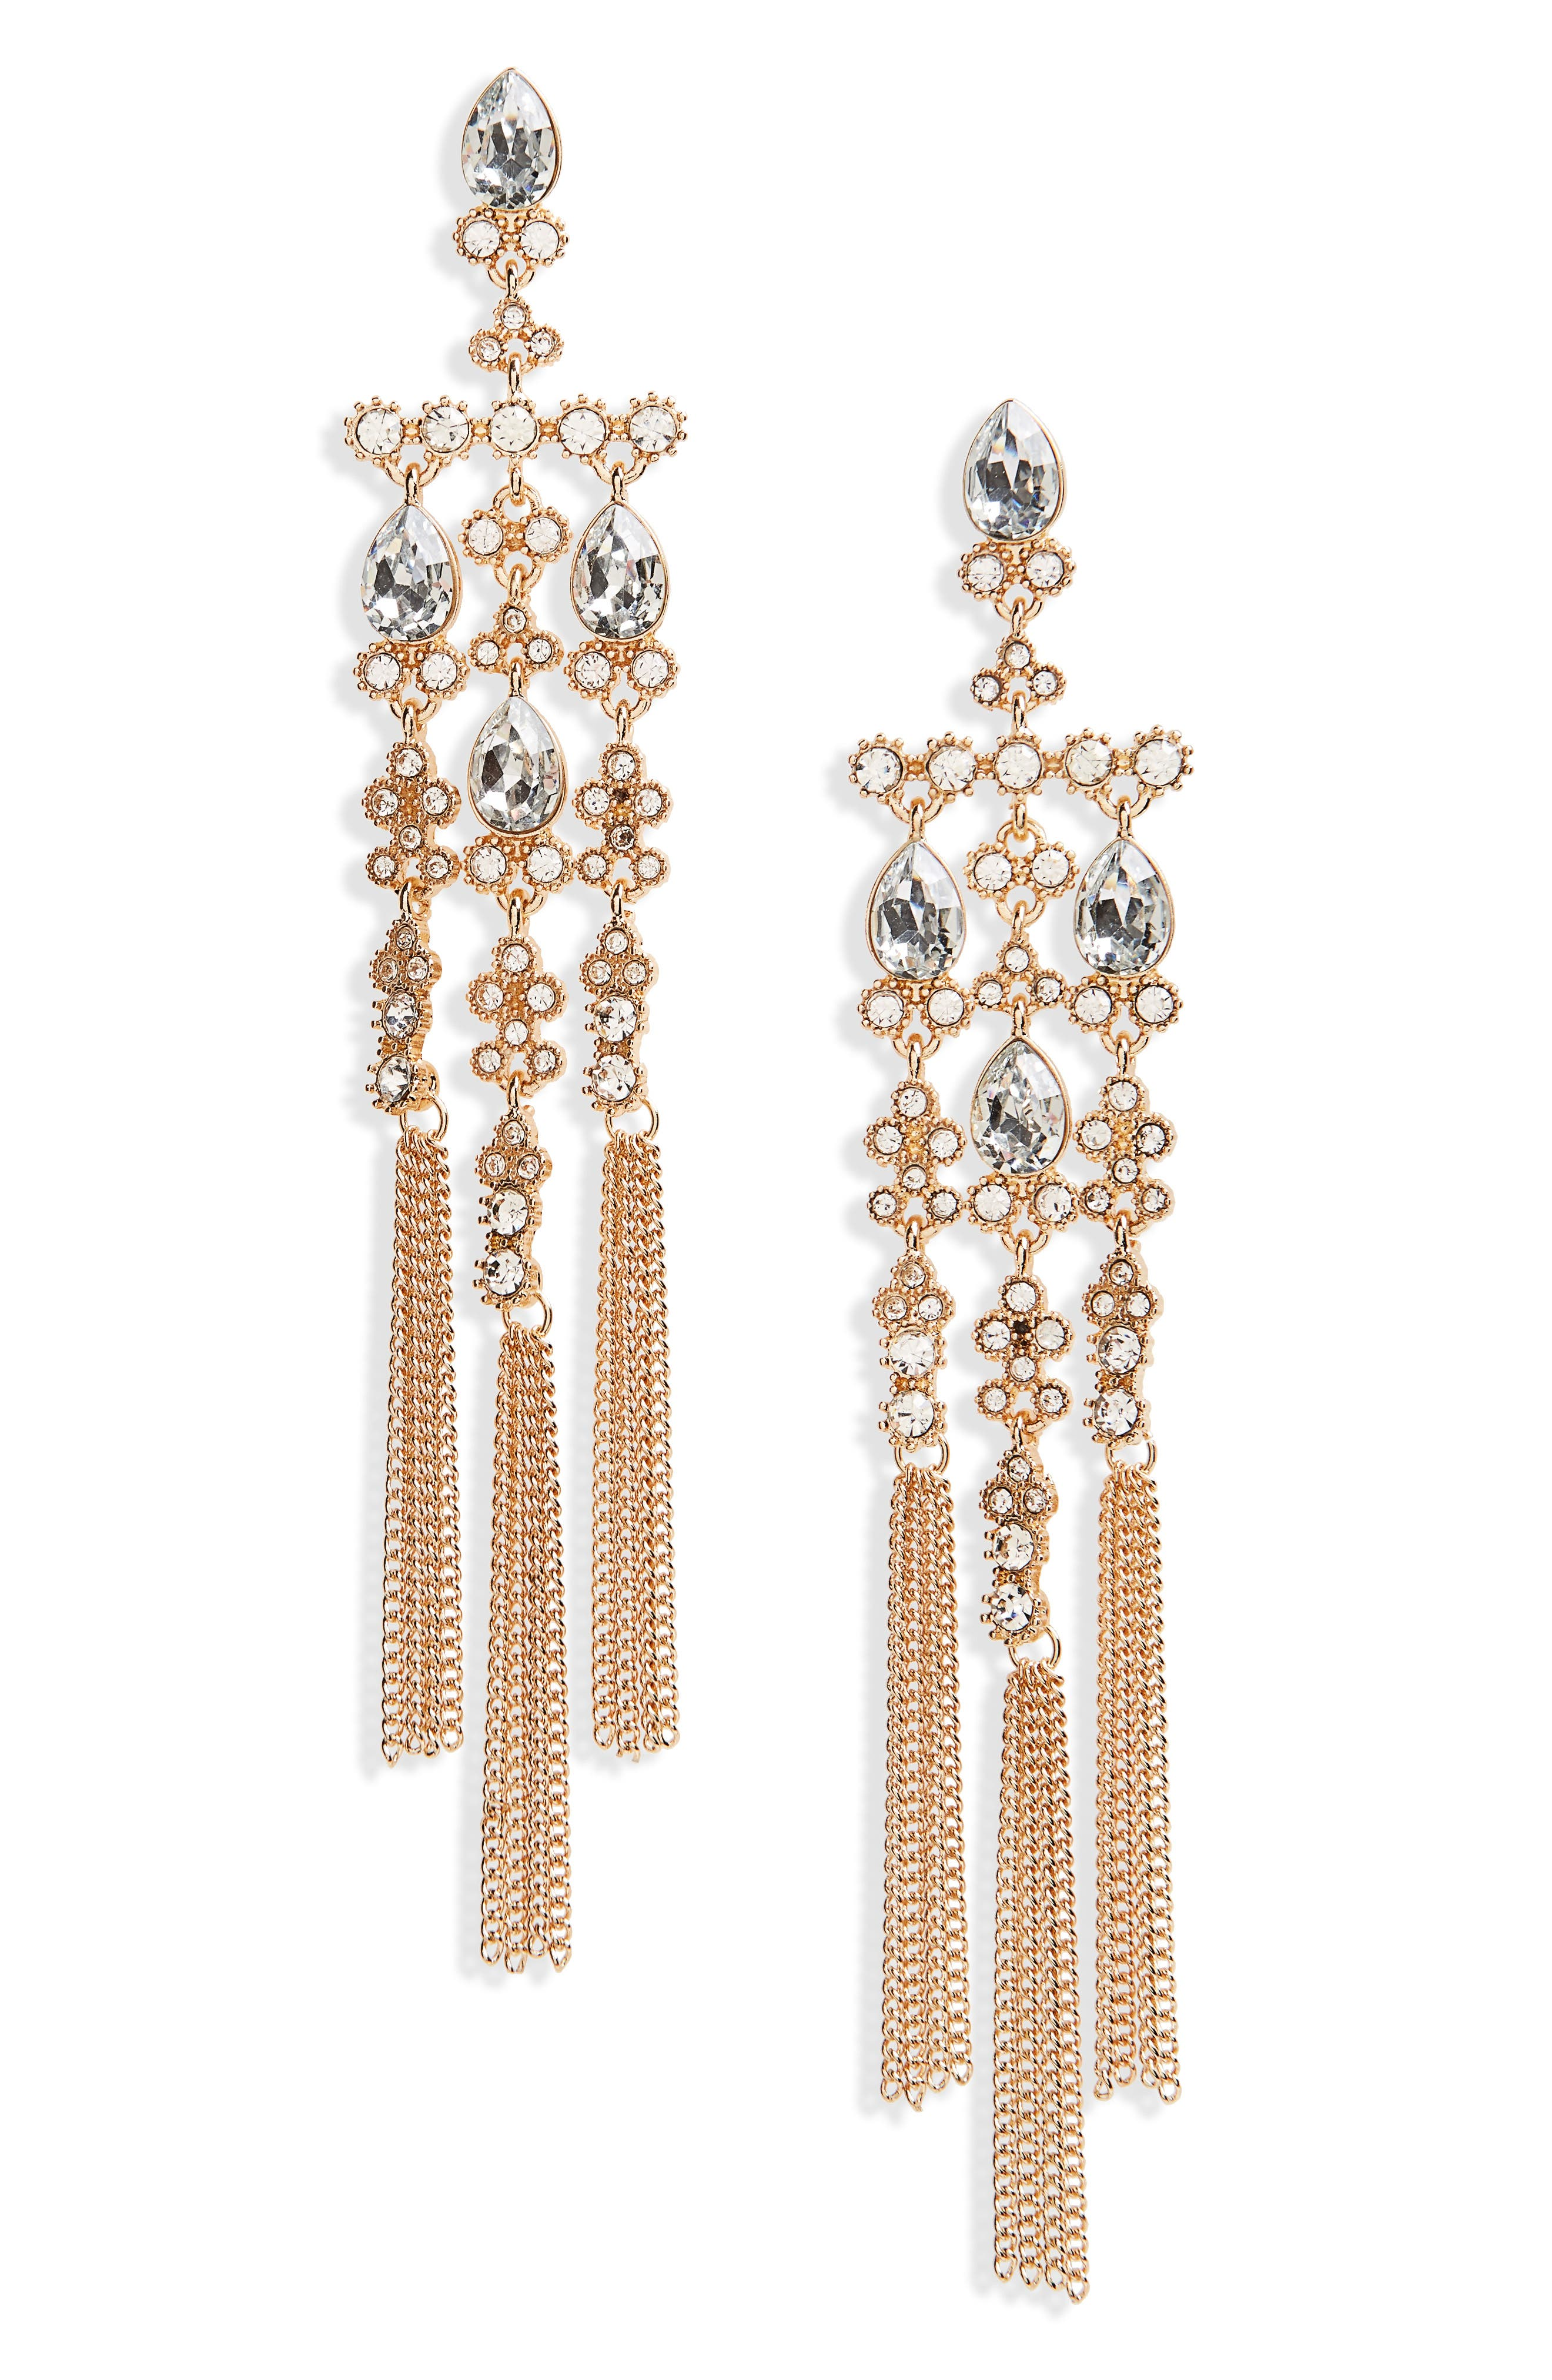 Crystal Chandelier Drop Earrings,                         Main,                         color, Gold/ Crystal/ Blue